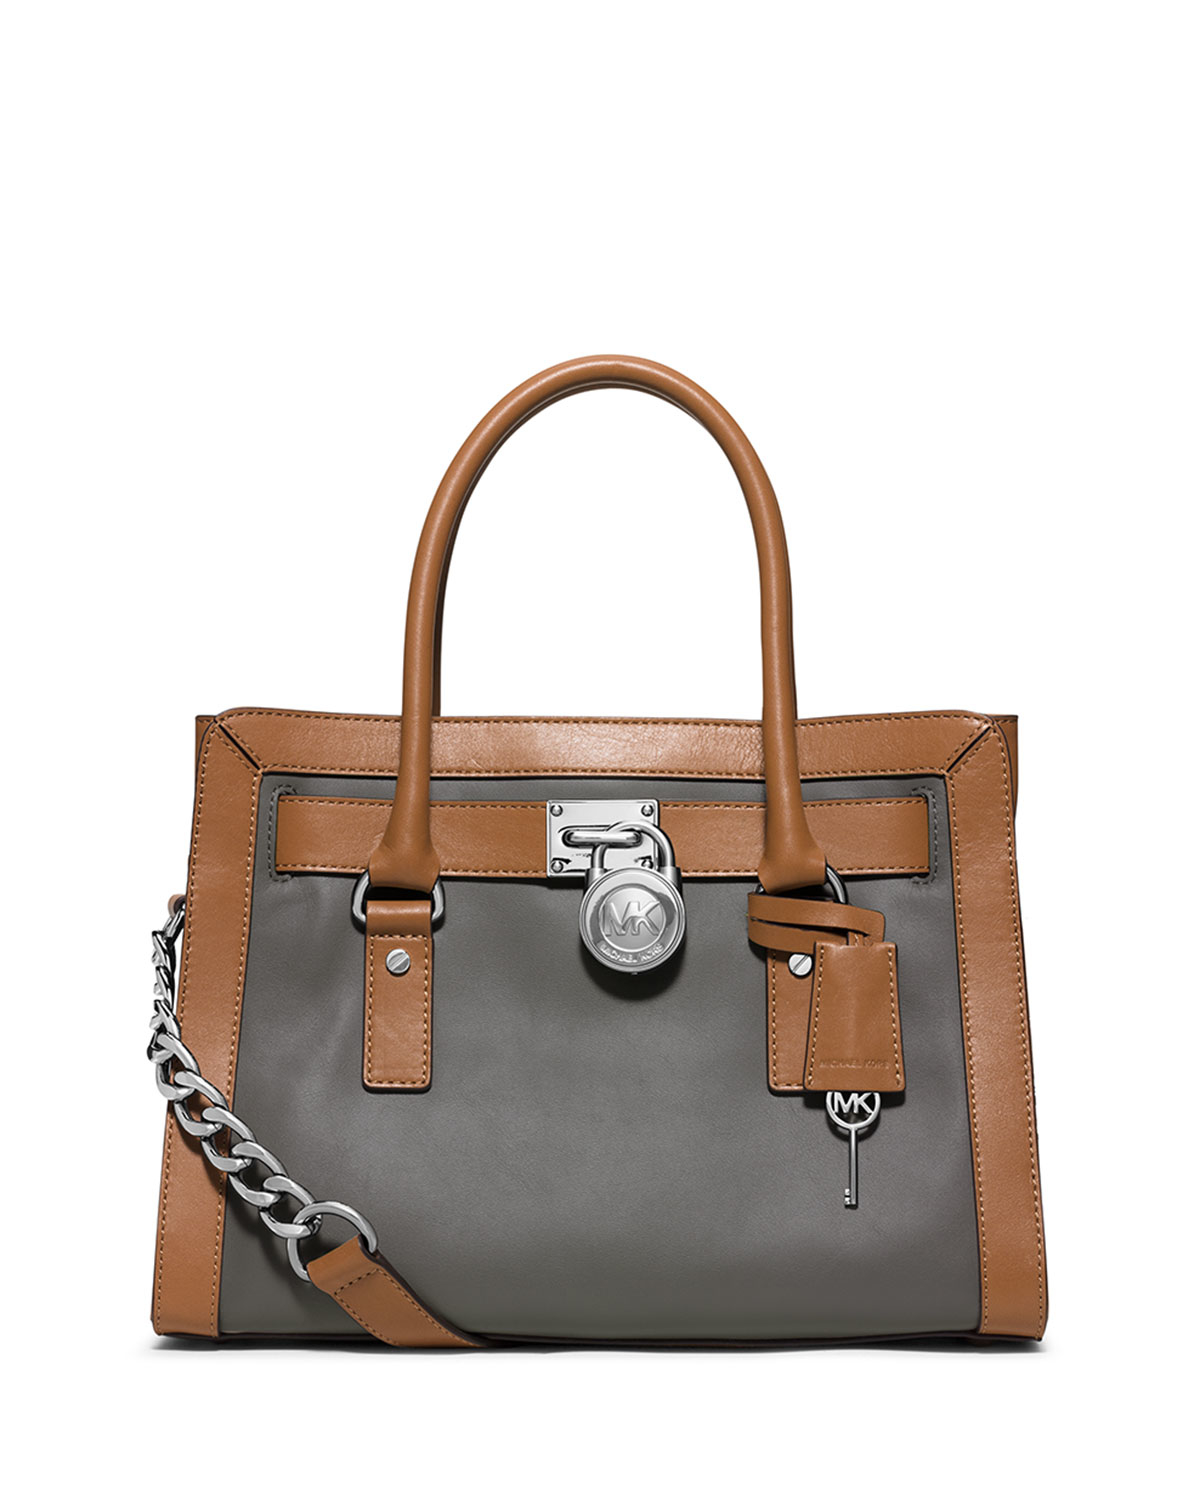 3ec9c8a6947d Lyst - MICHAEL Michael Kors Sutton Medium Leather Satchel in Brown